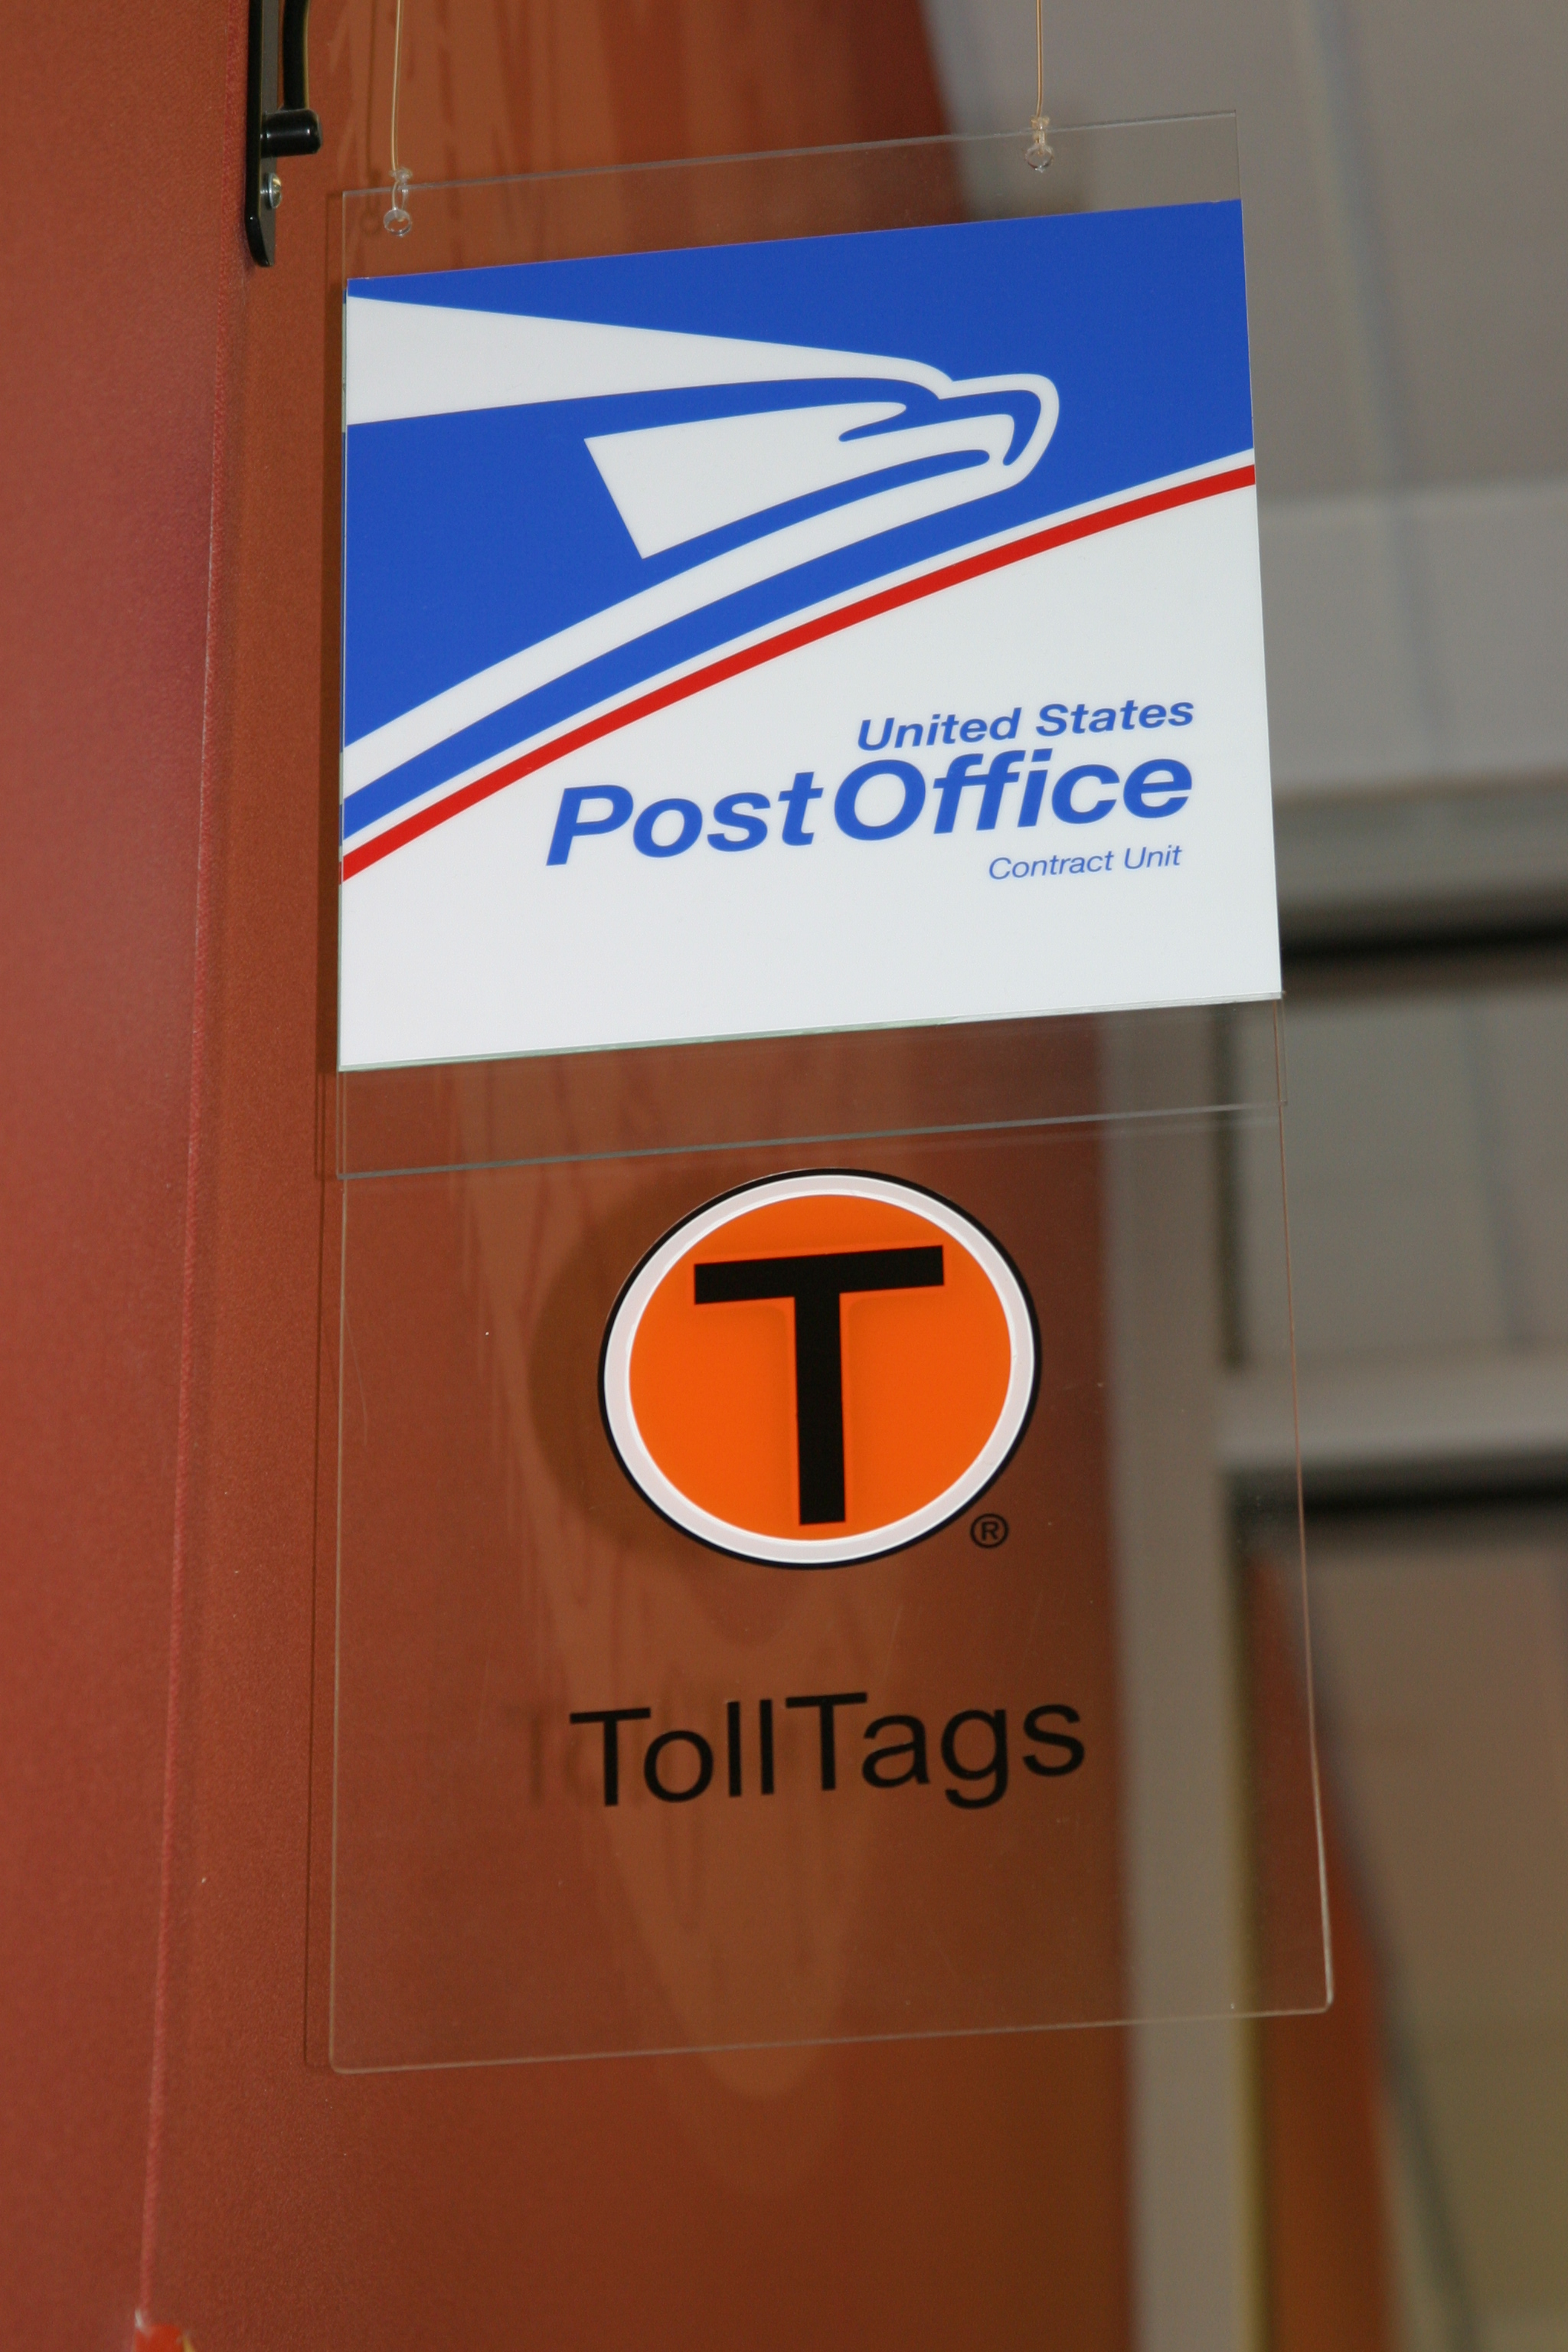 Postal Unit and TollTag sign